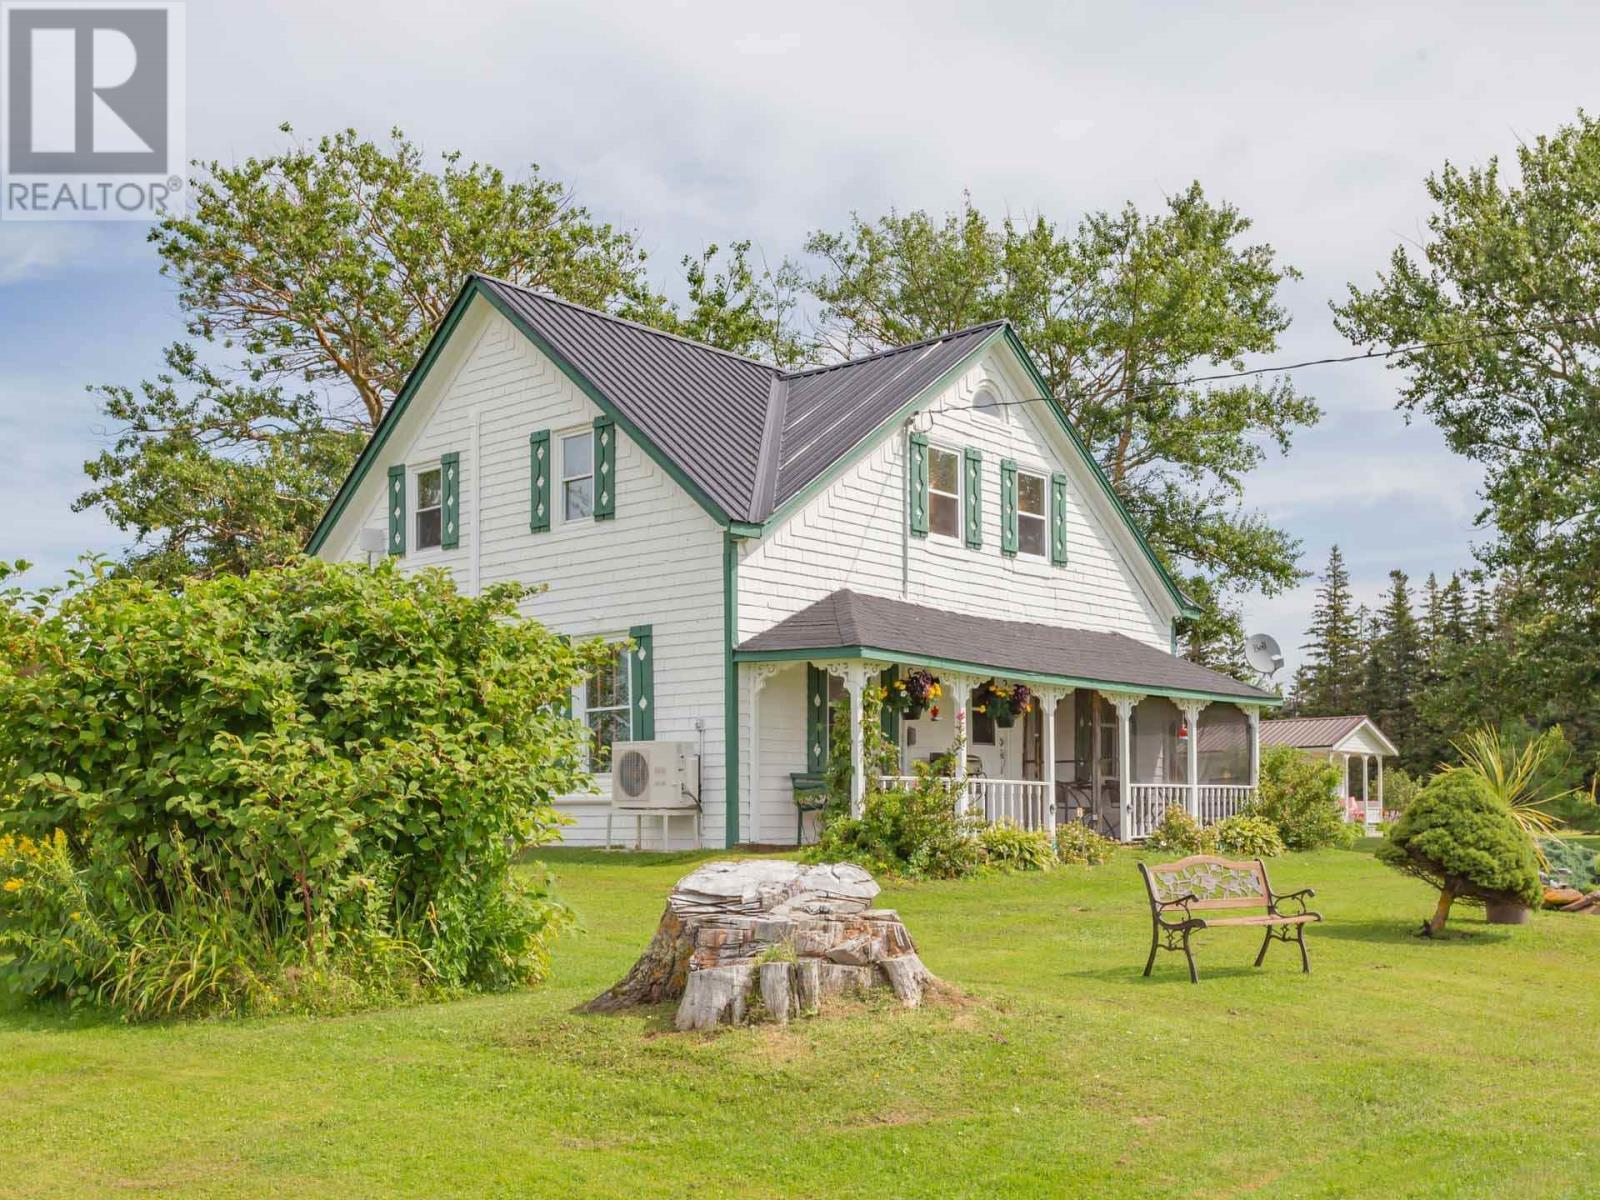 959 Greenwich Road959 Greenwich Road, Greenwich, Prince Edward Island C0A2A0, 3 Bedrooms Bedrooms, ,1 BathroomBathrooms,Single Family,For Sale,959 Greenwich Road,202101845